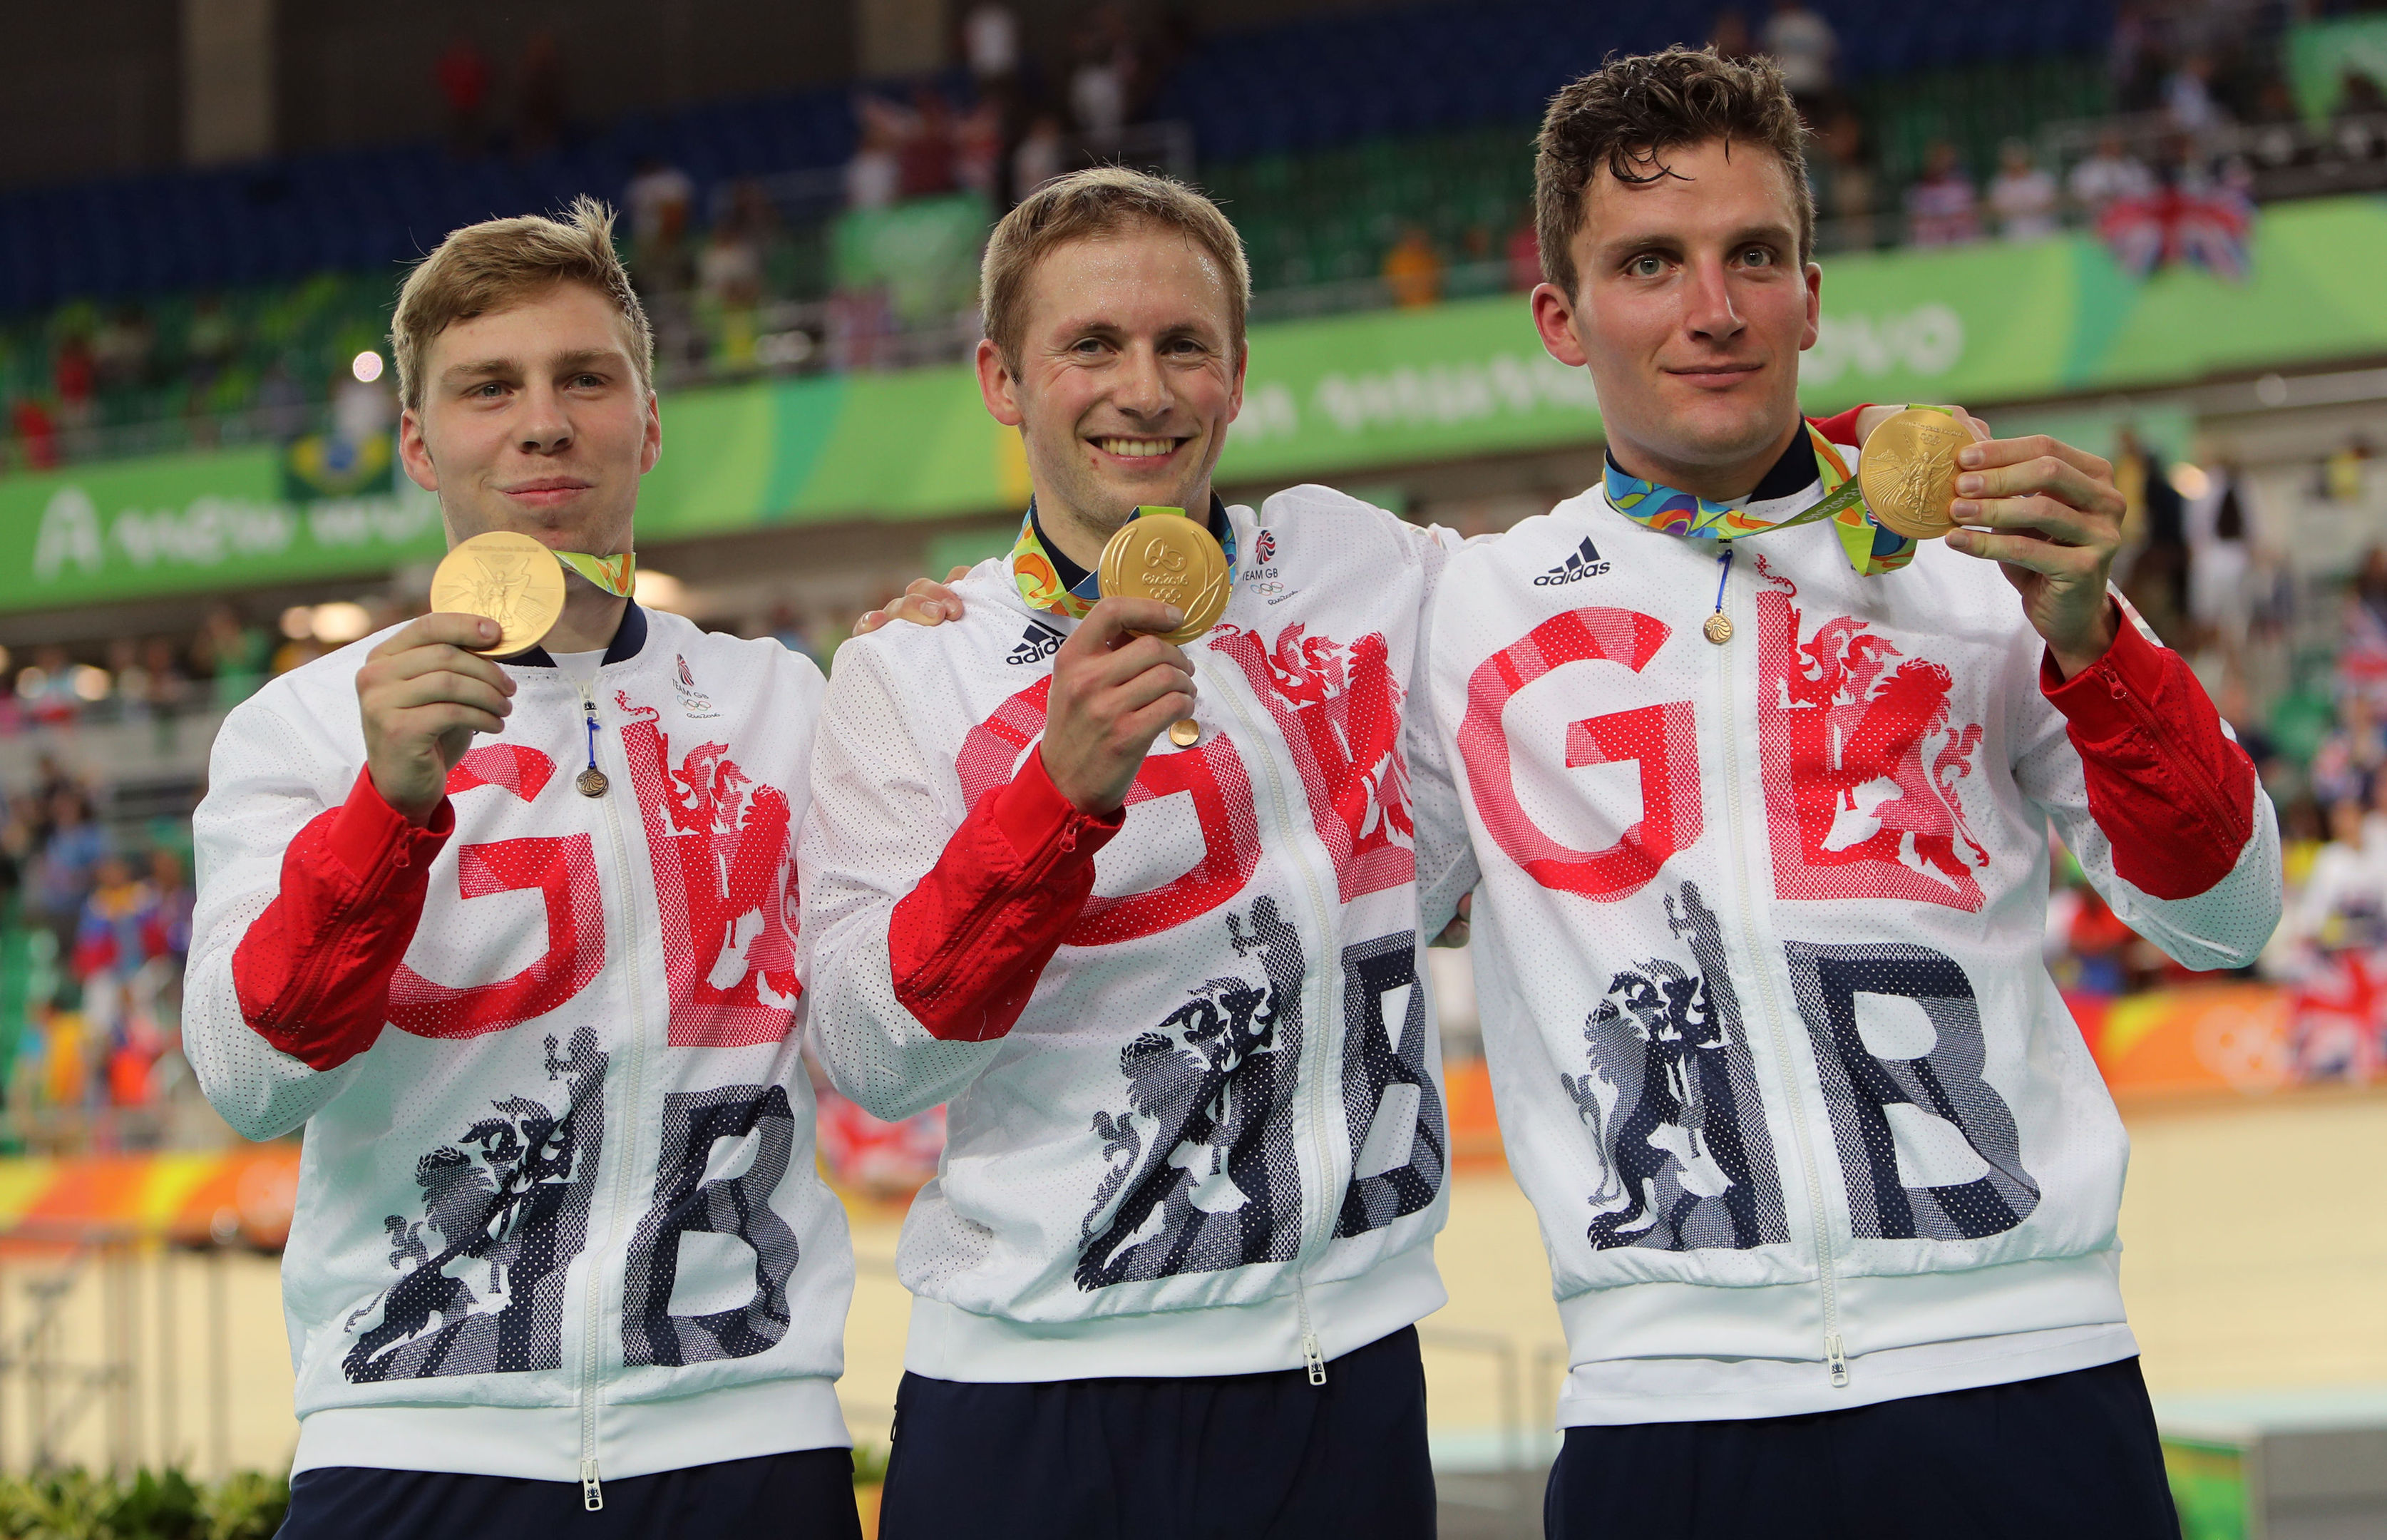 Great Britain's Philip Hindes, Jason Kenny and Callum Skinner with their gold medals following the men's team sprint final.